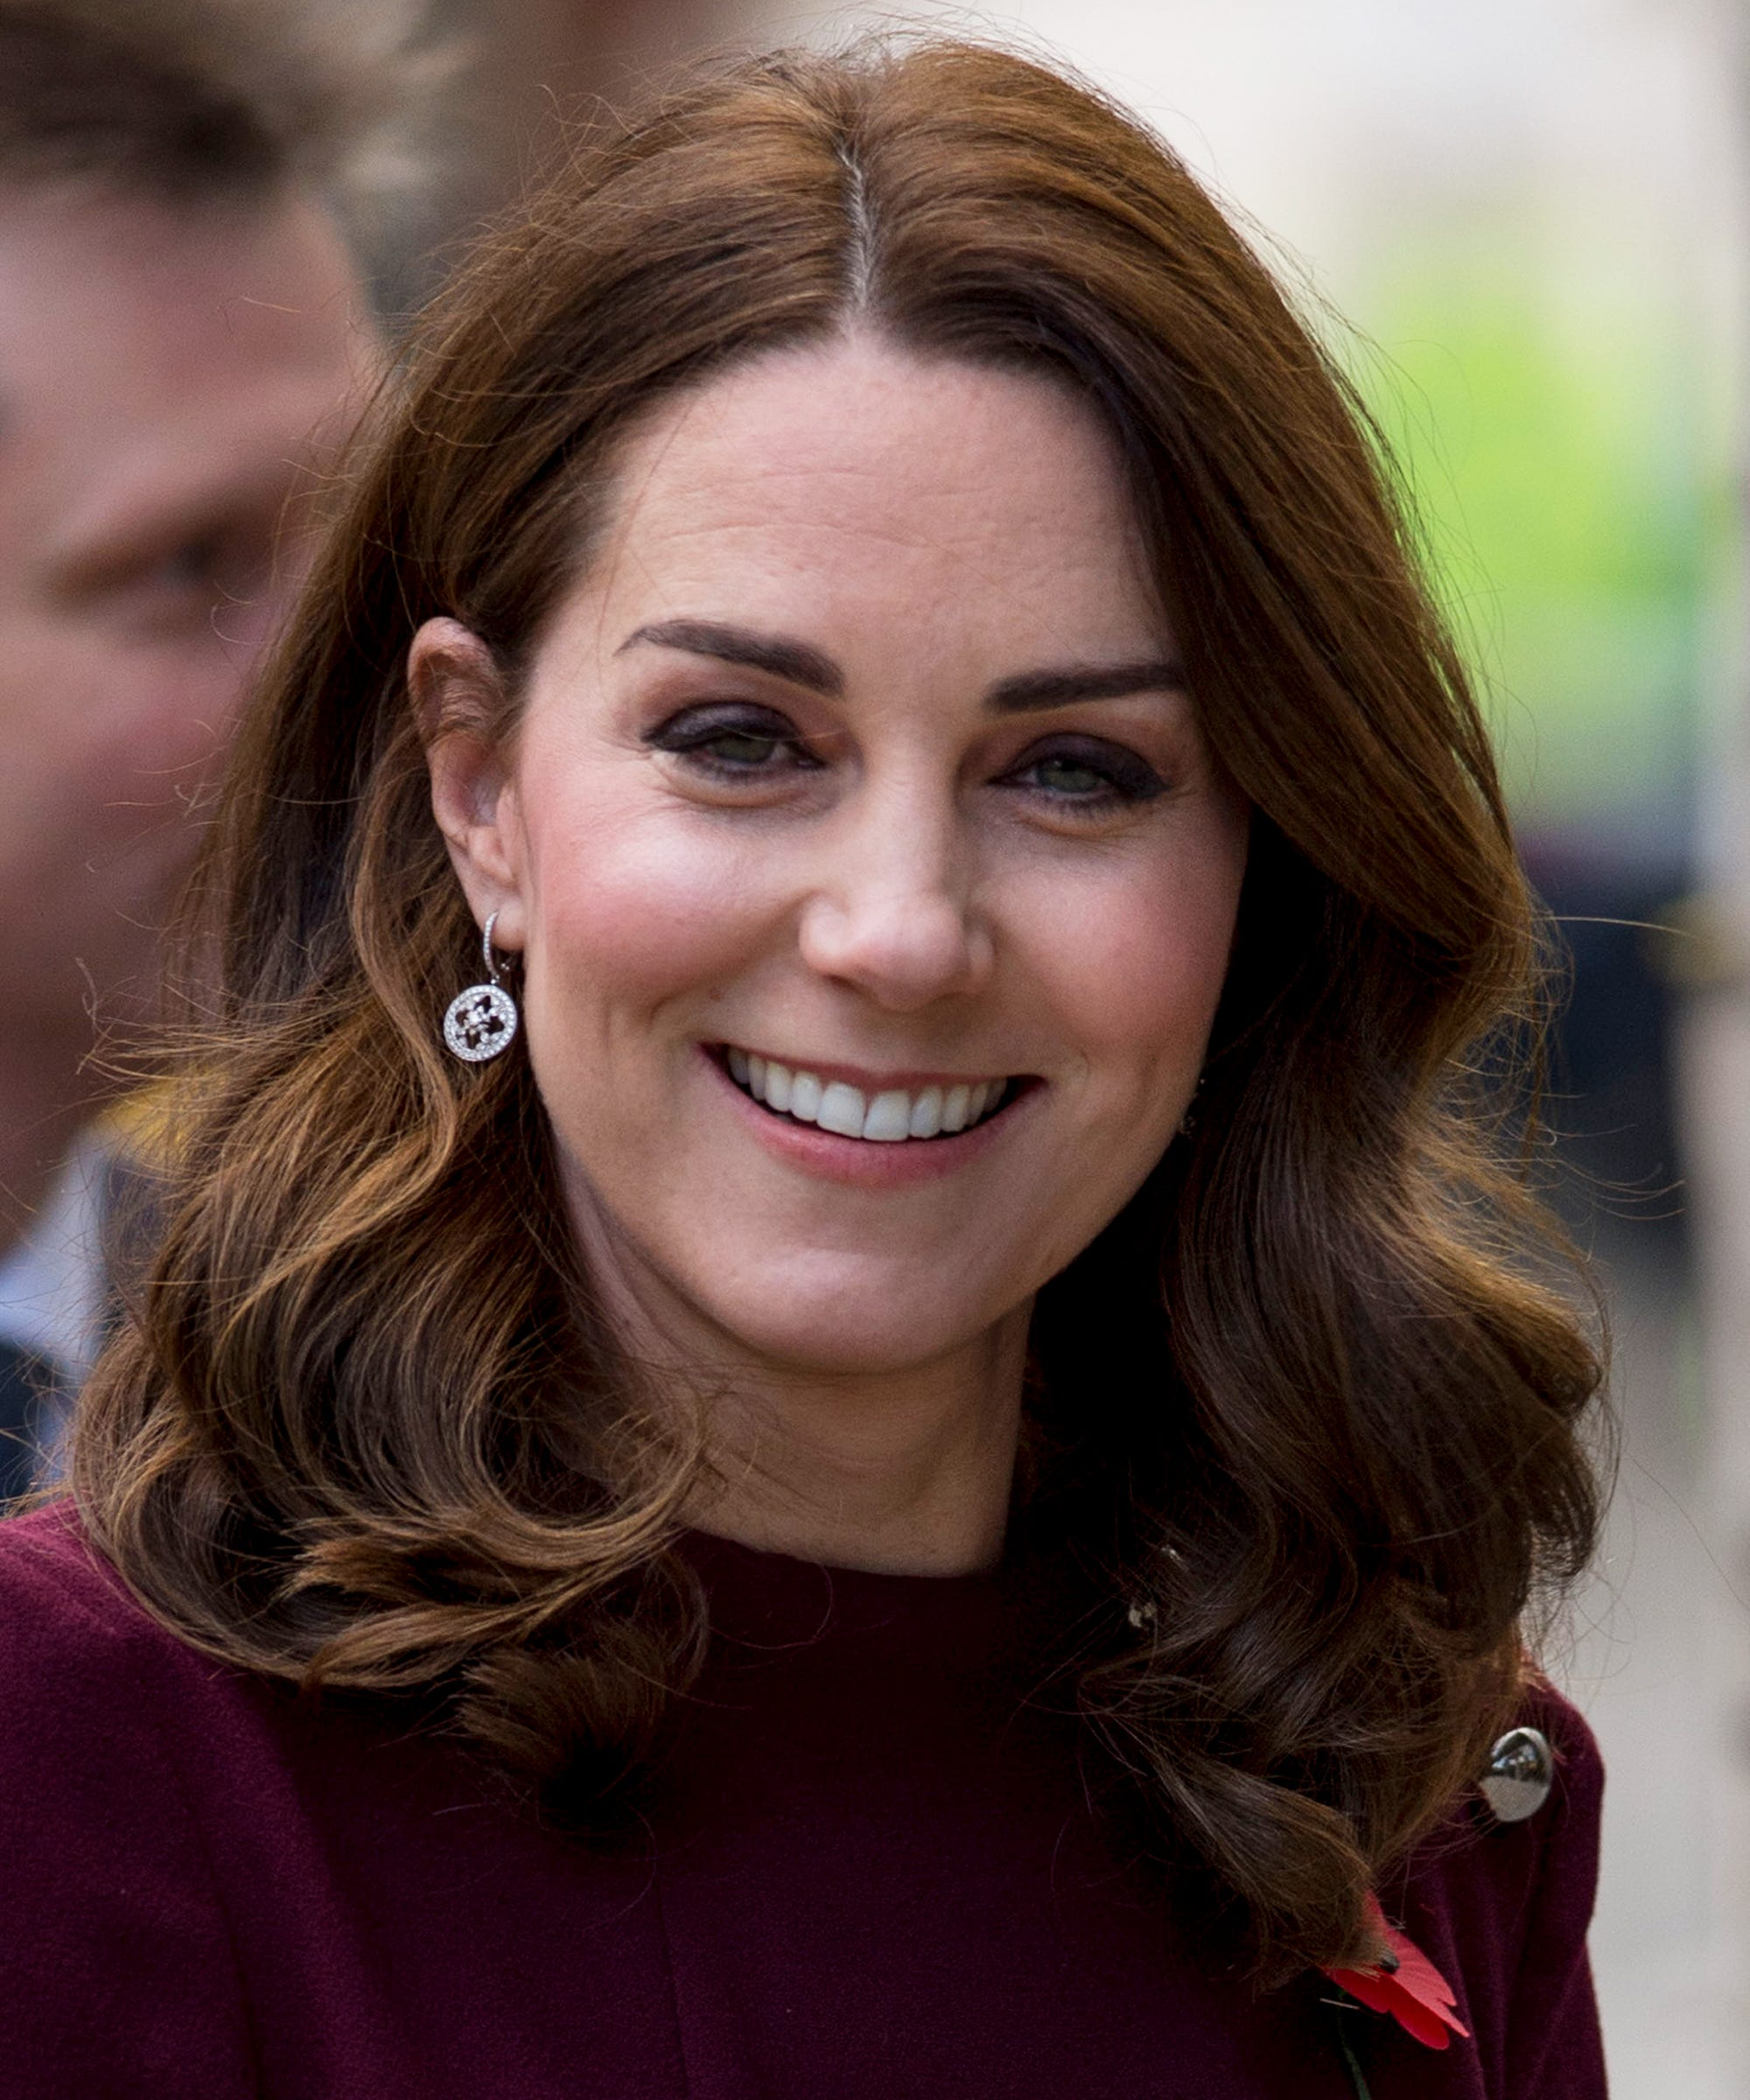 Kate Middleton Just Debuted An Even Shorter Hairstyle Kate Middleton Just Debuted An Even Shorter Hairstyle new foto